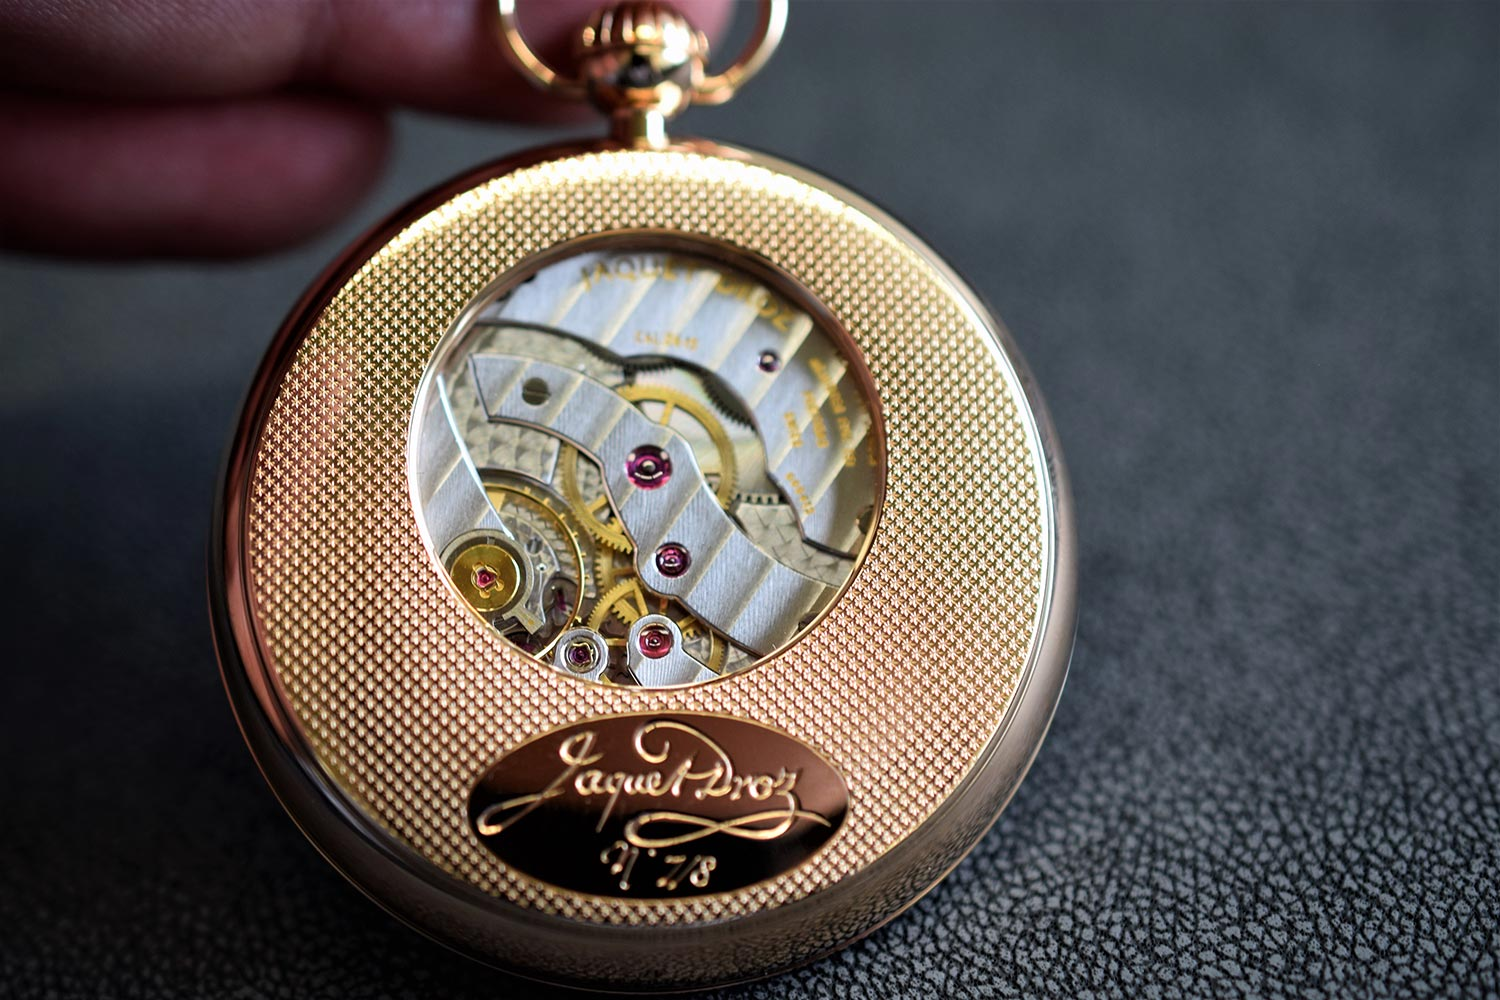 The Grande Seconde Paillonné Pocket Watch